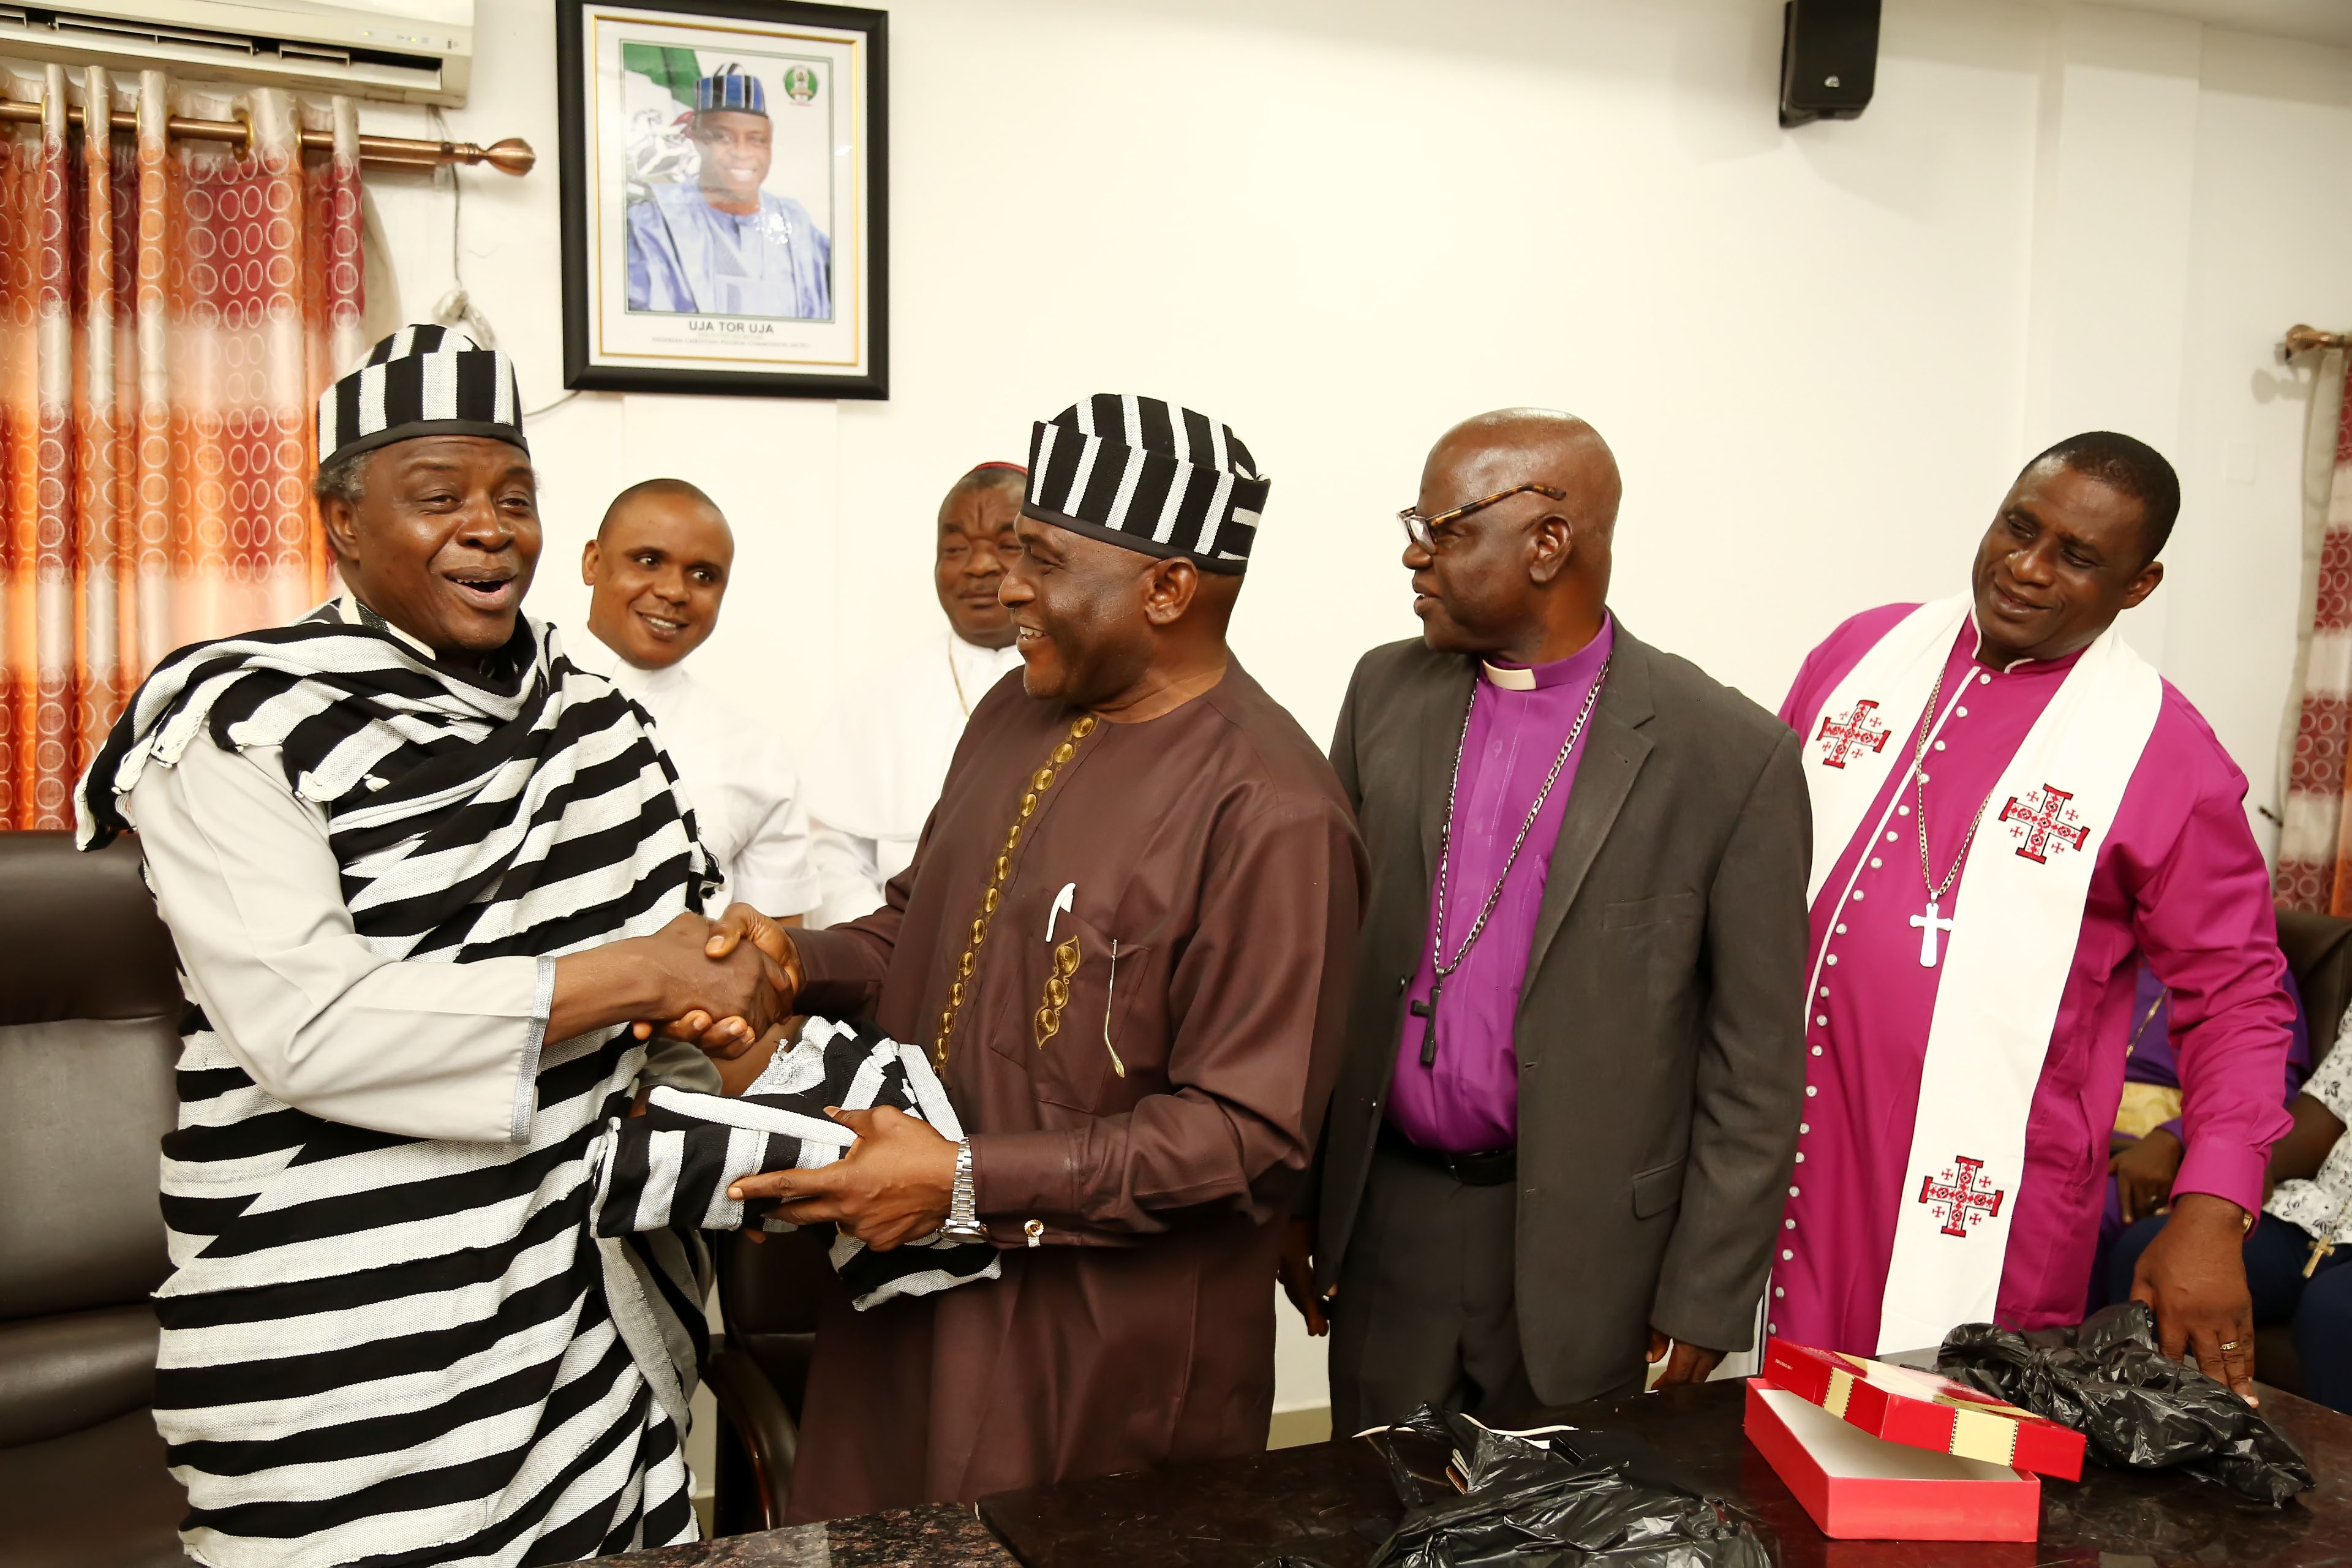 L/R: Executive Secretary, Nigeria Christian Pilgrim Commission (NCPC), Rev. Uja Tor Uja; Secretary, Benue Christian and Church Leaders consultative Forum, Rev. Gideon Shagba; Chairman, Benue Christian and Church Leaders consultative Forum, the Bishop of Anglican Church Makurdi Diocese, Bishop Nathan Inyom and the Archbishop. Benjamin Kurudu of Firm Foundation Ministry Internationa Makurdi during a courtesy visit by the members of the Christian forum, Benue State to the Exe. Sec. NCPC at the Commission's Corporate Headquarters in Abuja.